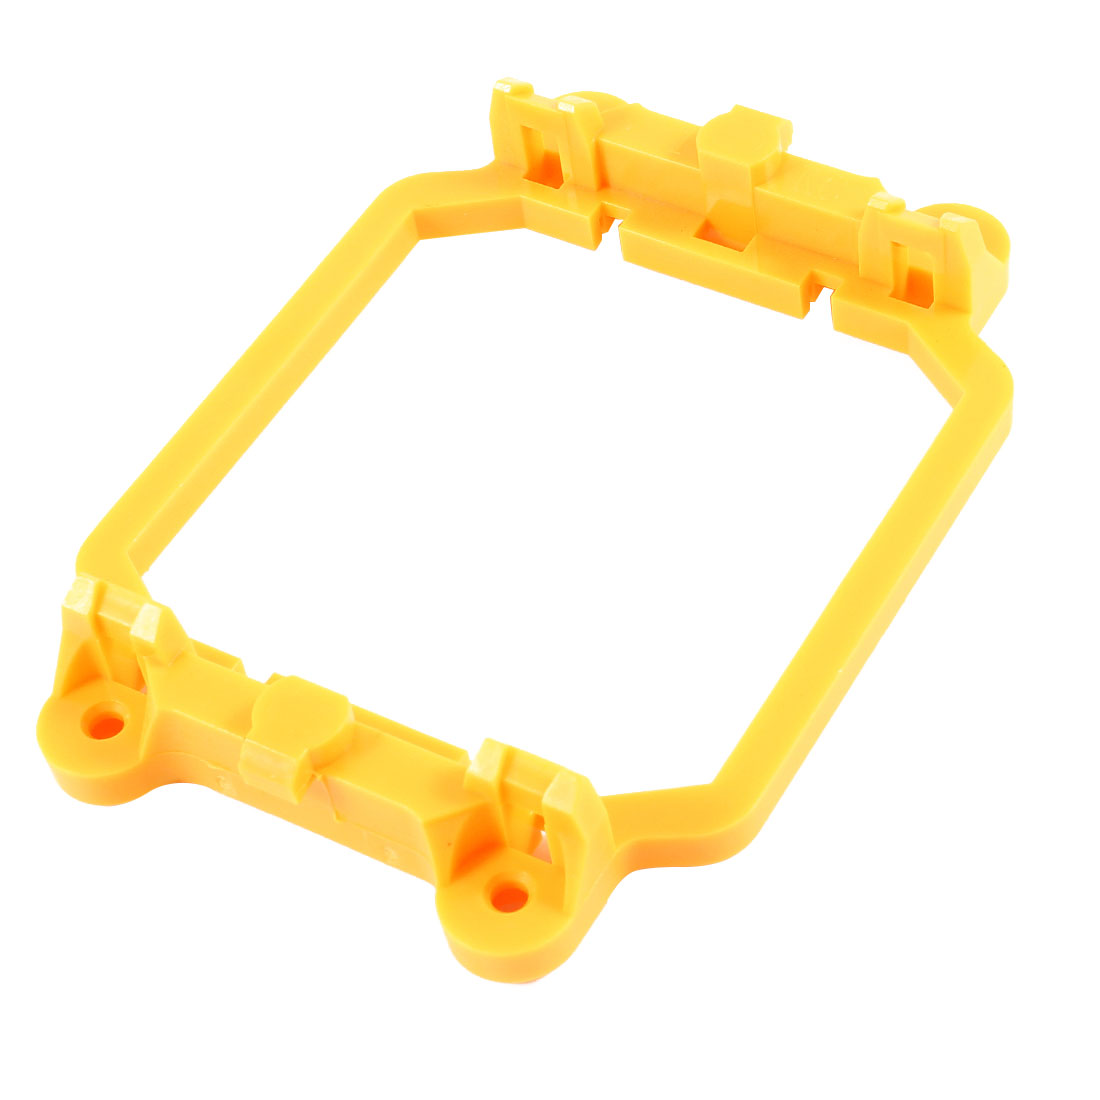 PC Computer Fan Retainer Bracket Stand Yellow for AMD AM2 AM3 Socket